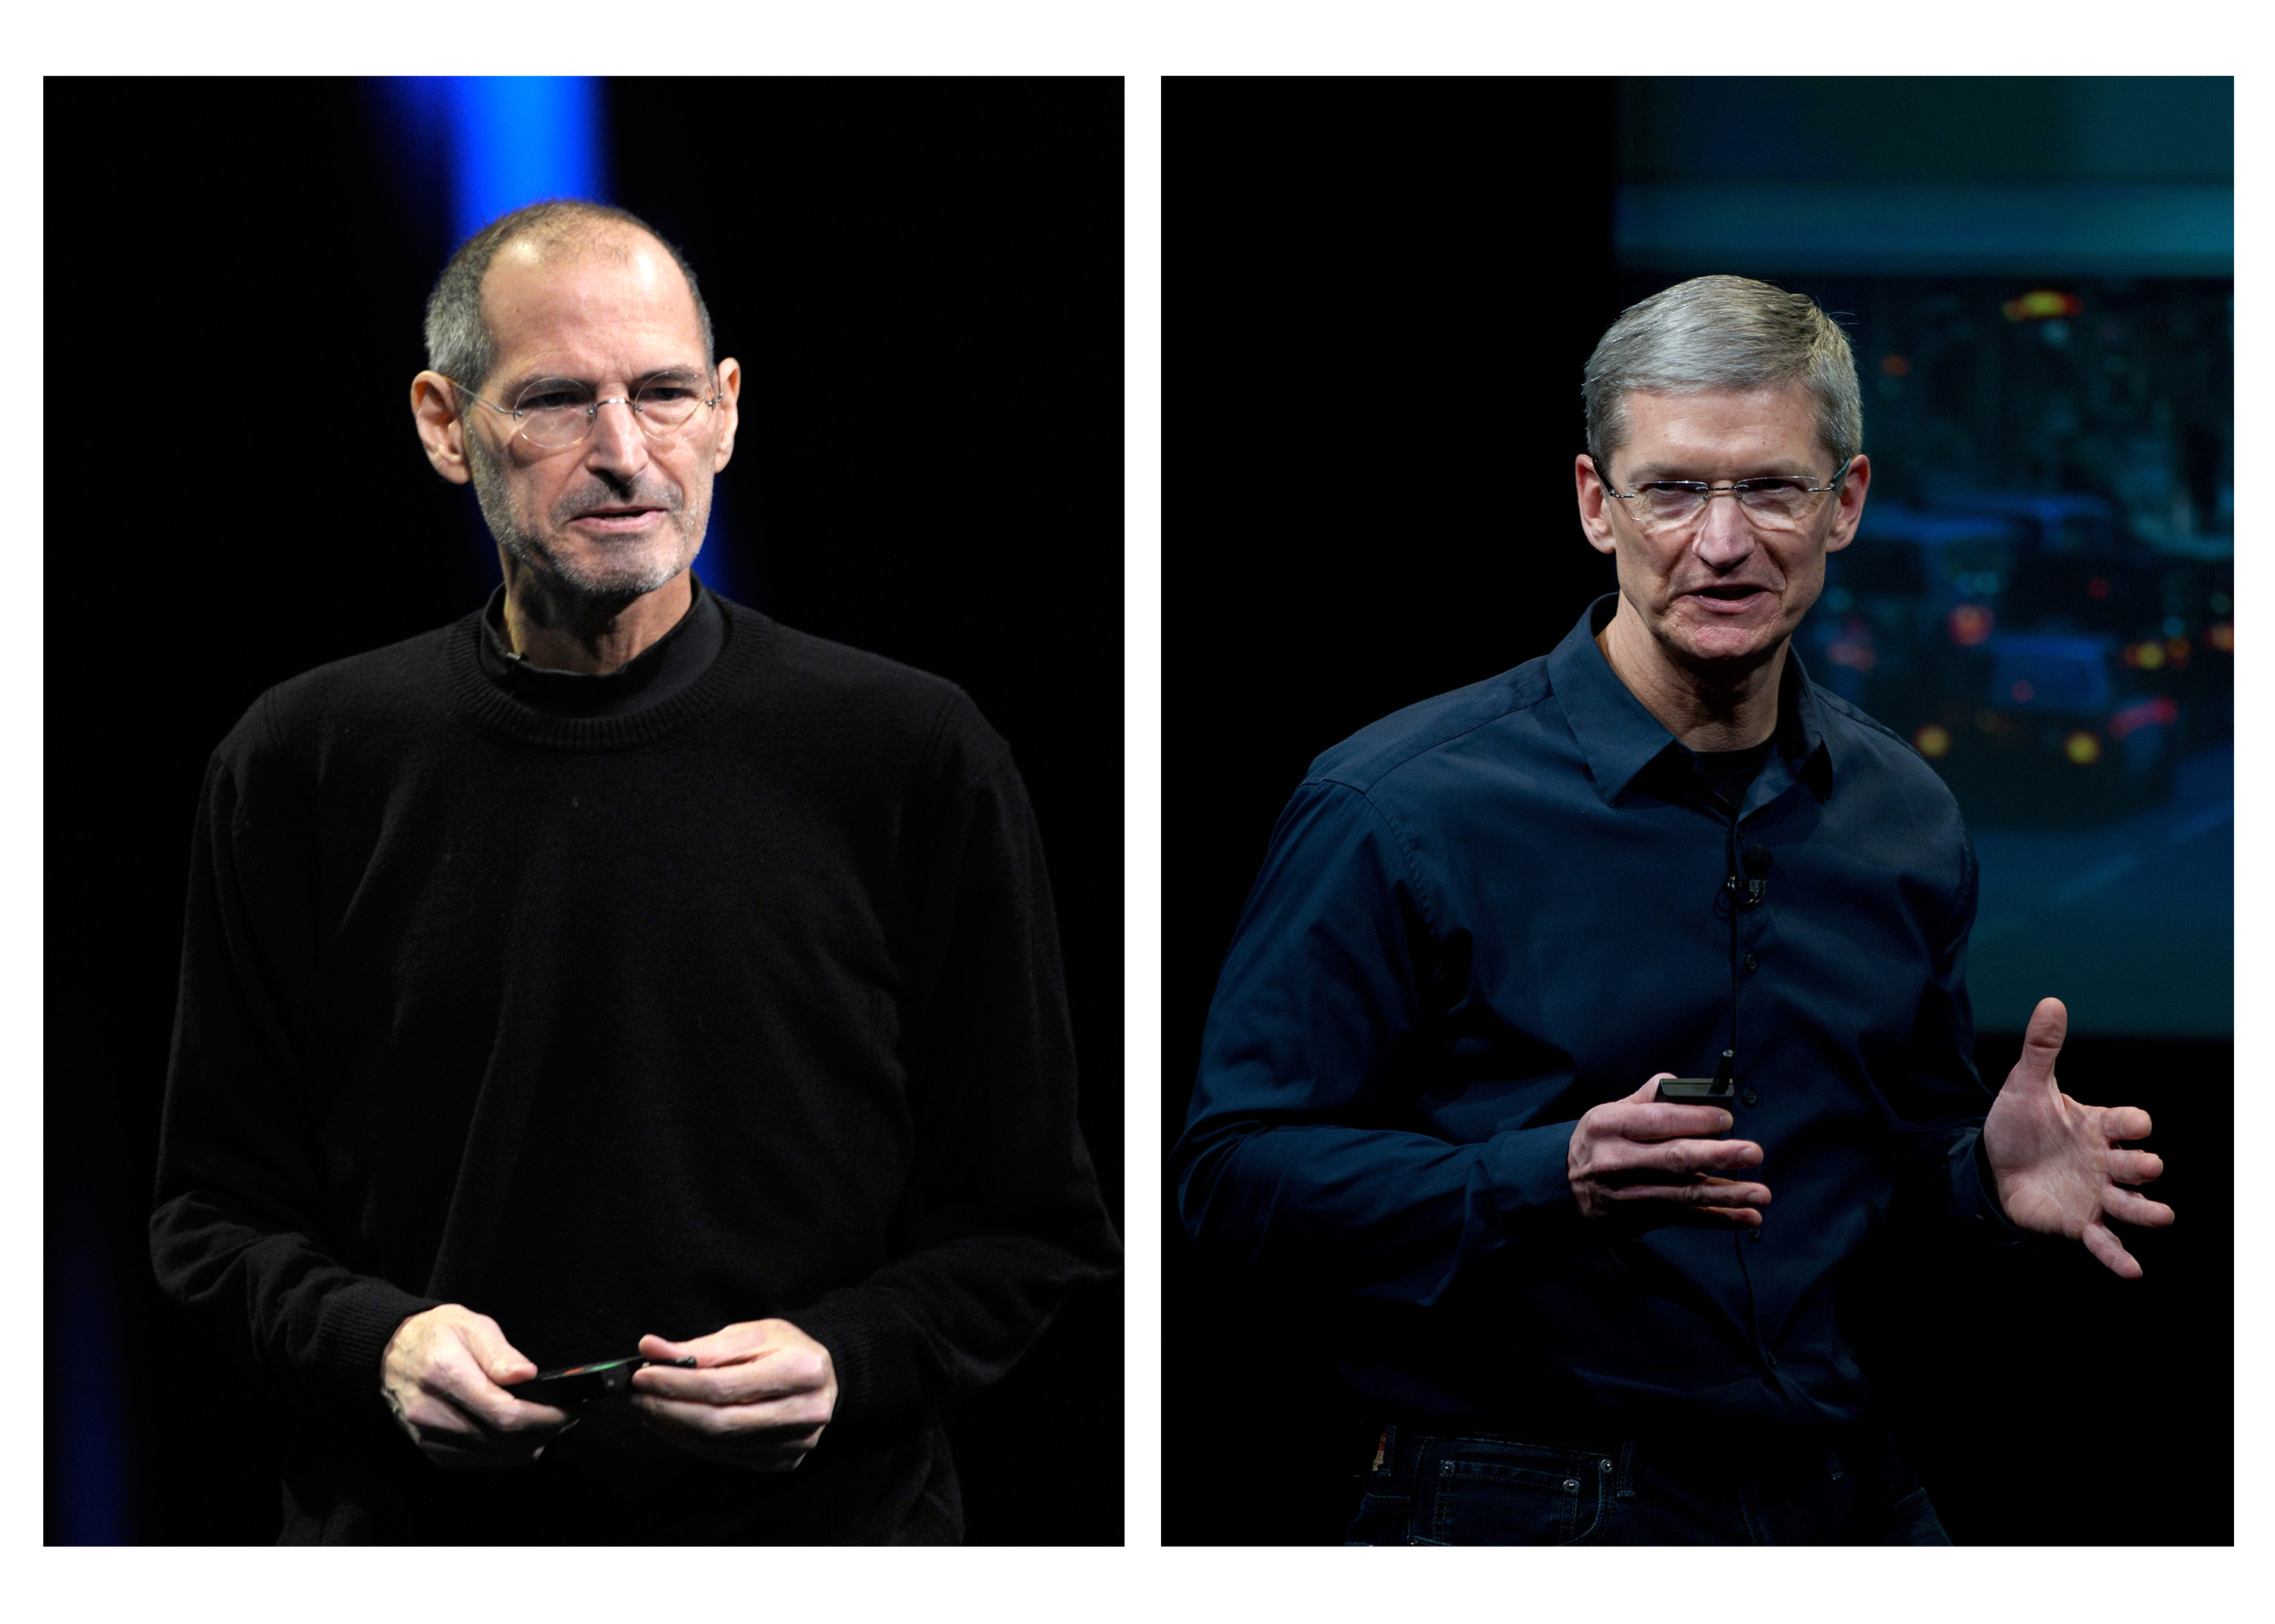 In this combination photo, former Apple CEO Steve Jobs, left, unveils the iCloud storage system at the Apple Worldwide Developers Conference 2011 in San Francisco, Calif., on June 6, 2011, while Apple CEO Tim Cook, right, speaks during an event at the company's headquarters in Cupertino, Calif., on Oct. 4, 2011.